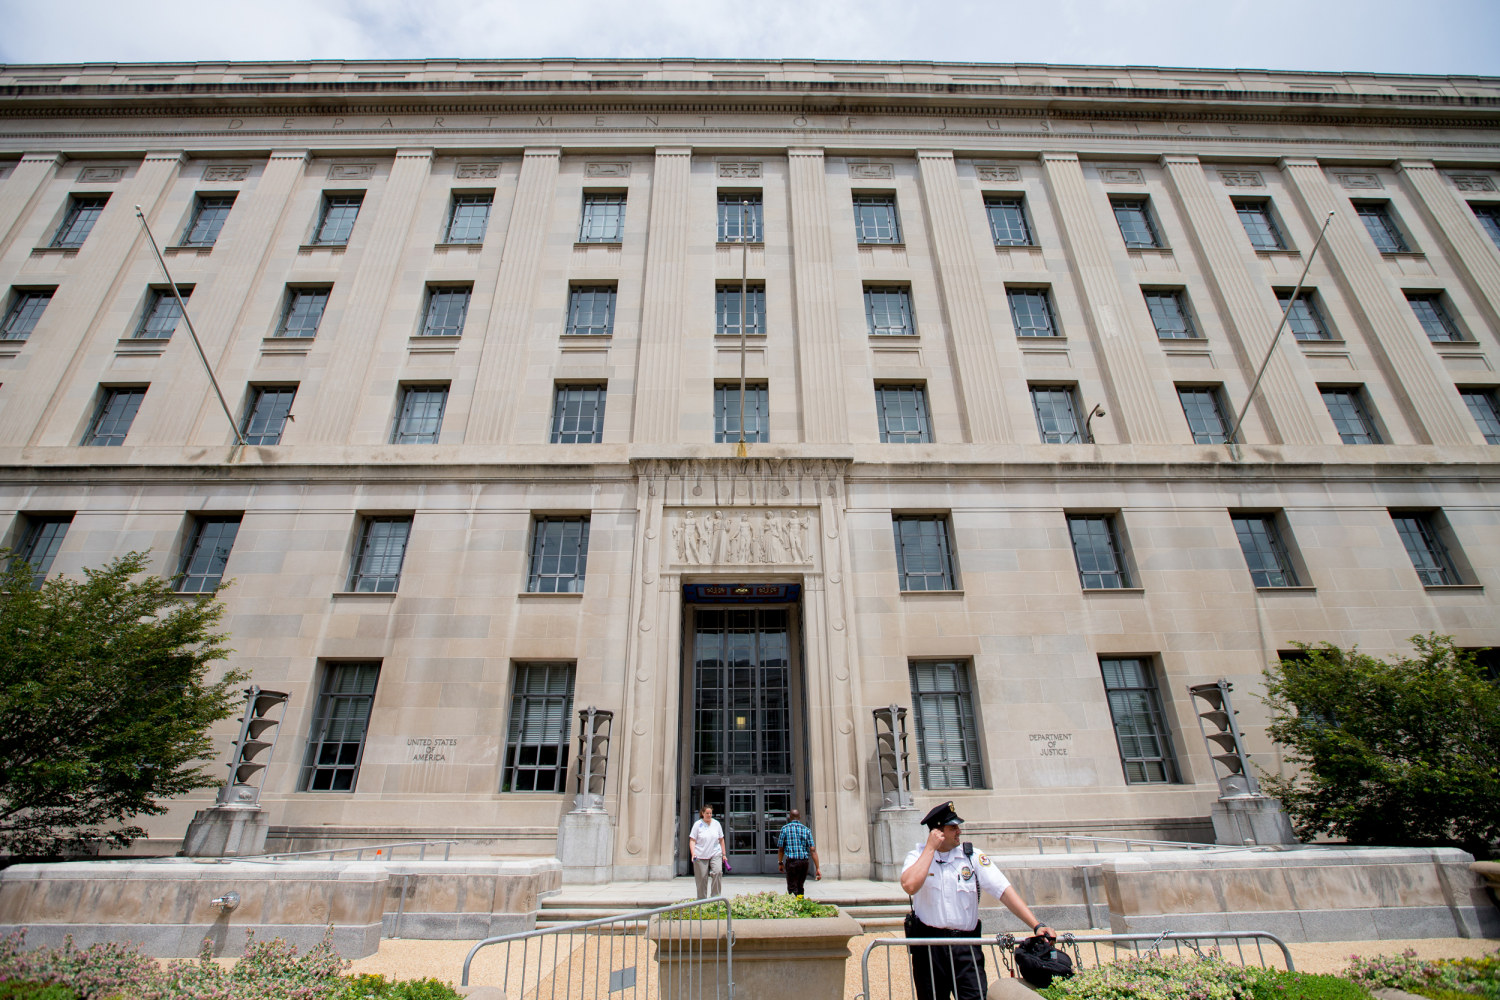 Sexual misconduct 'systemic' at US Department of Justice, says watchdog